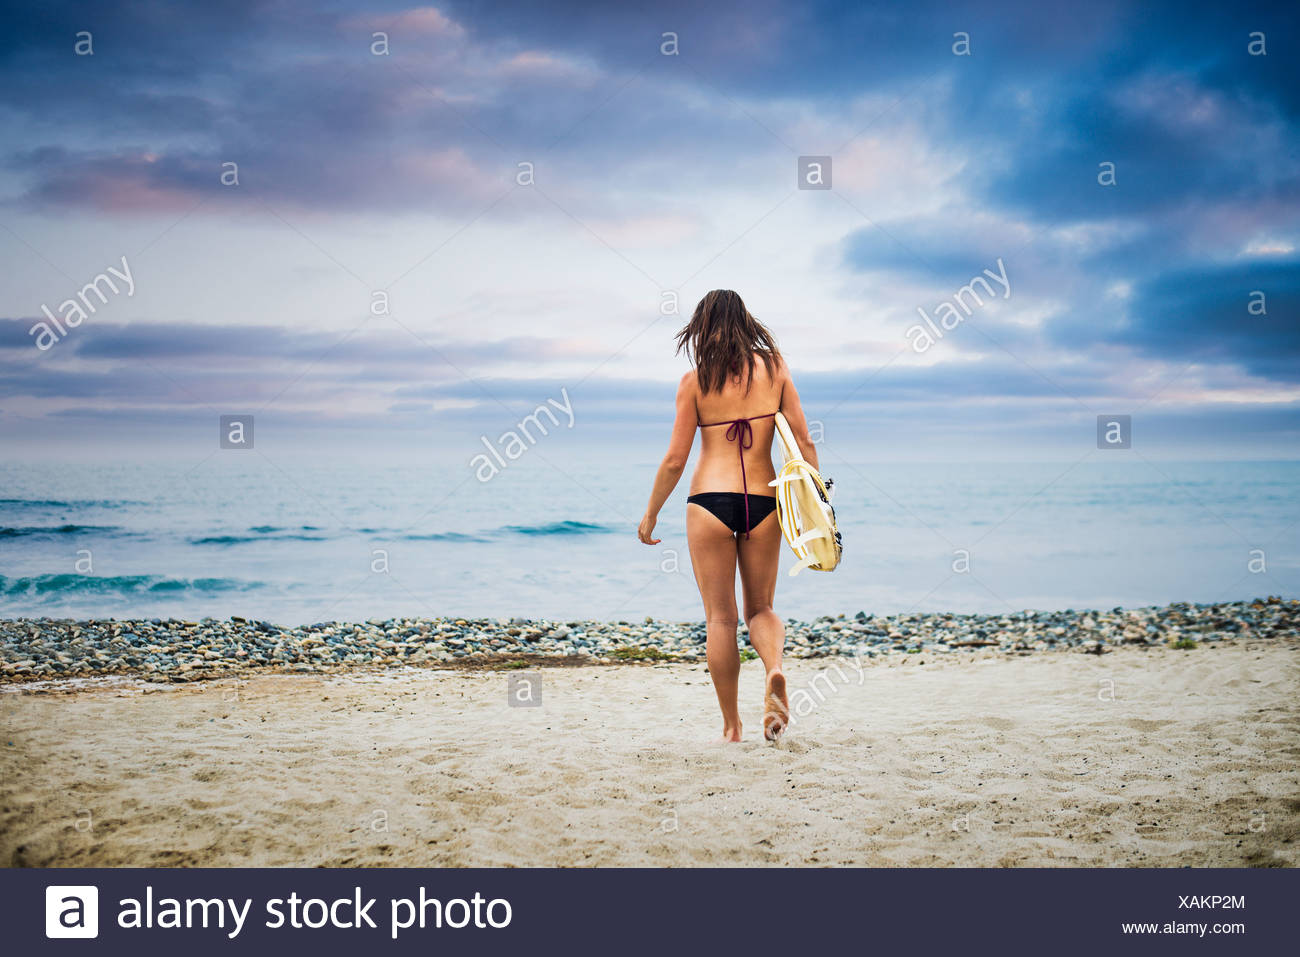 Young woman carrying surfboard to sea - Stock Image